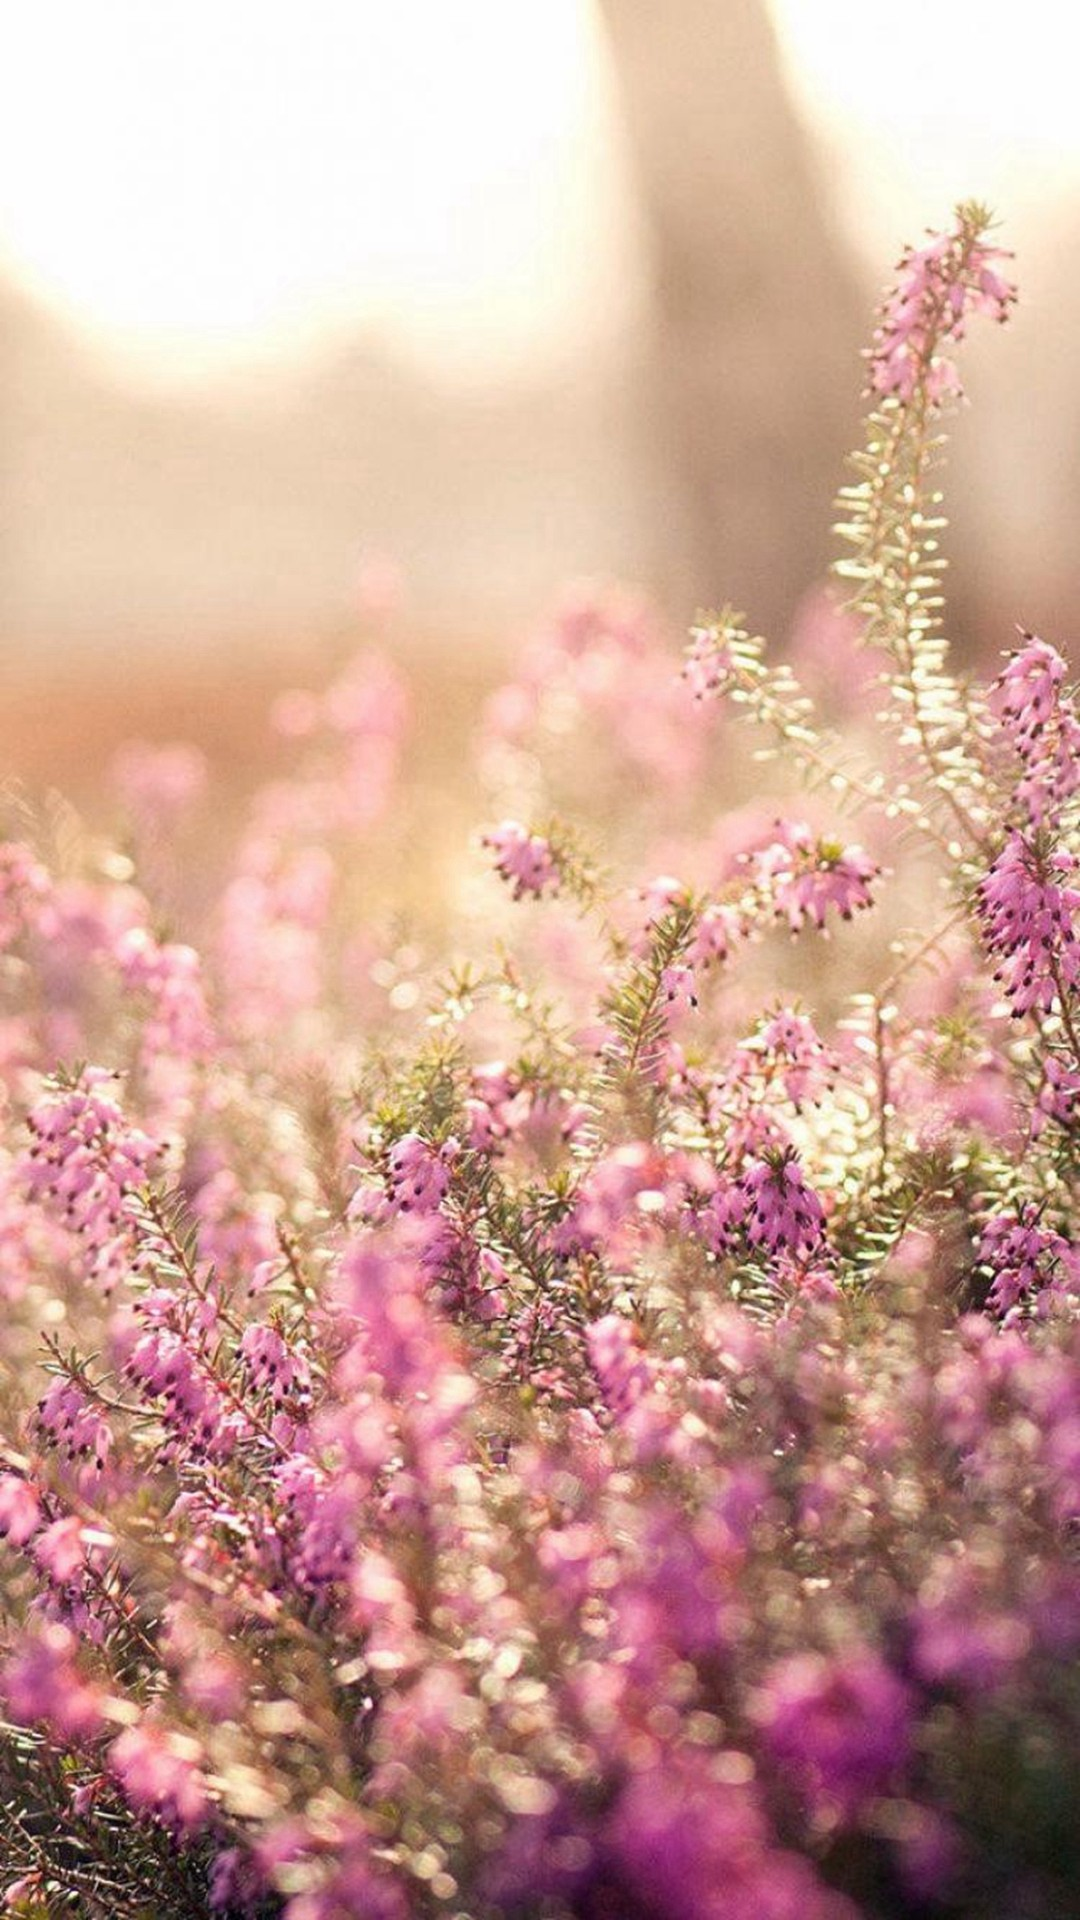 Nature Spring Bloomy Flowers Blurry iPhone 6 wallpaper